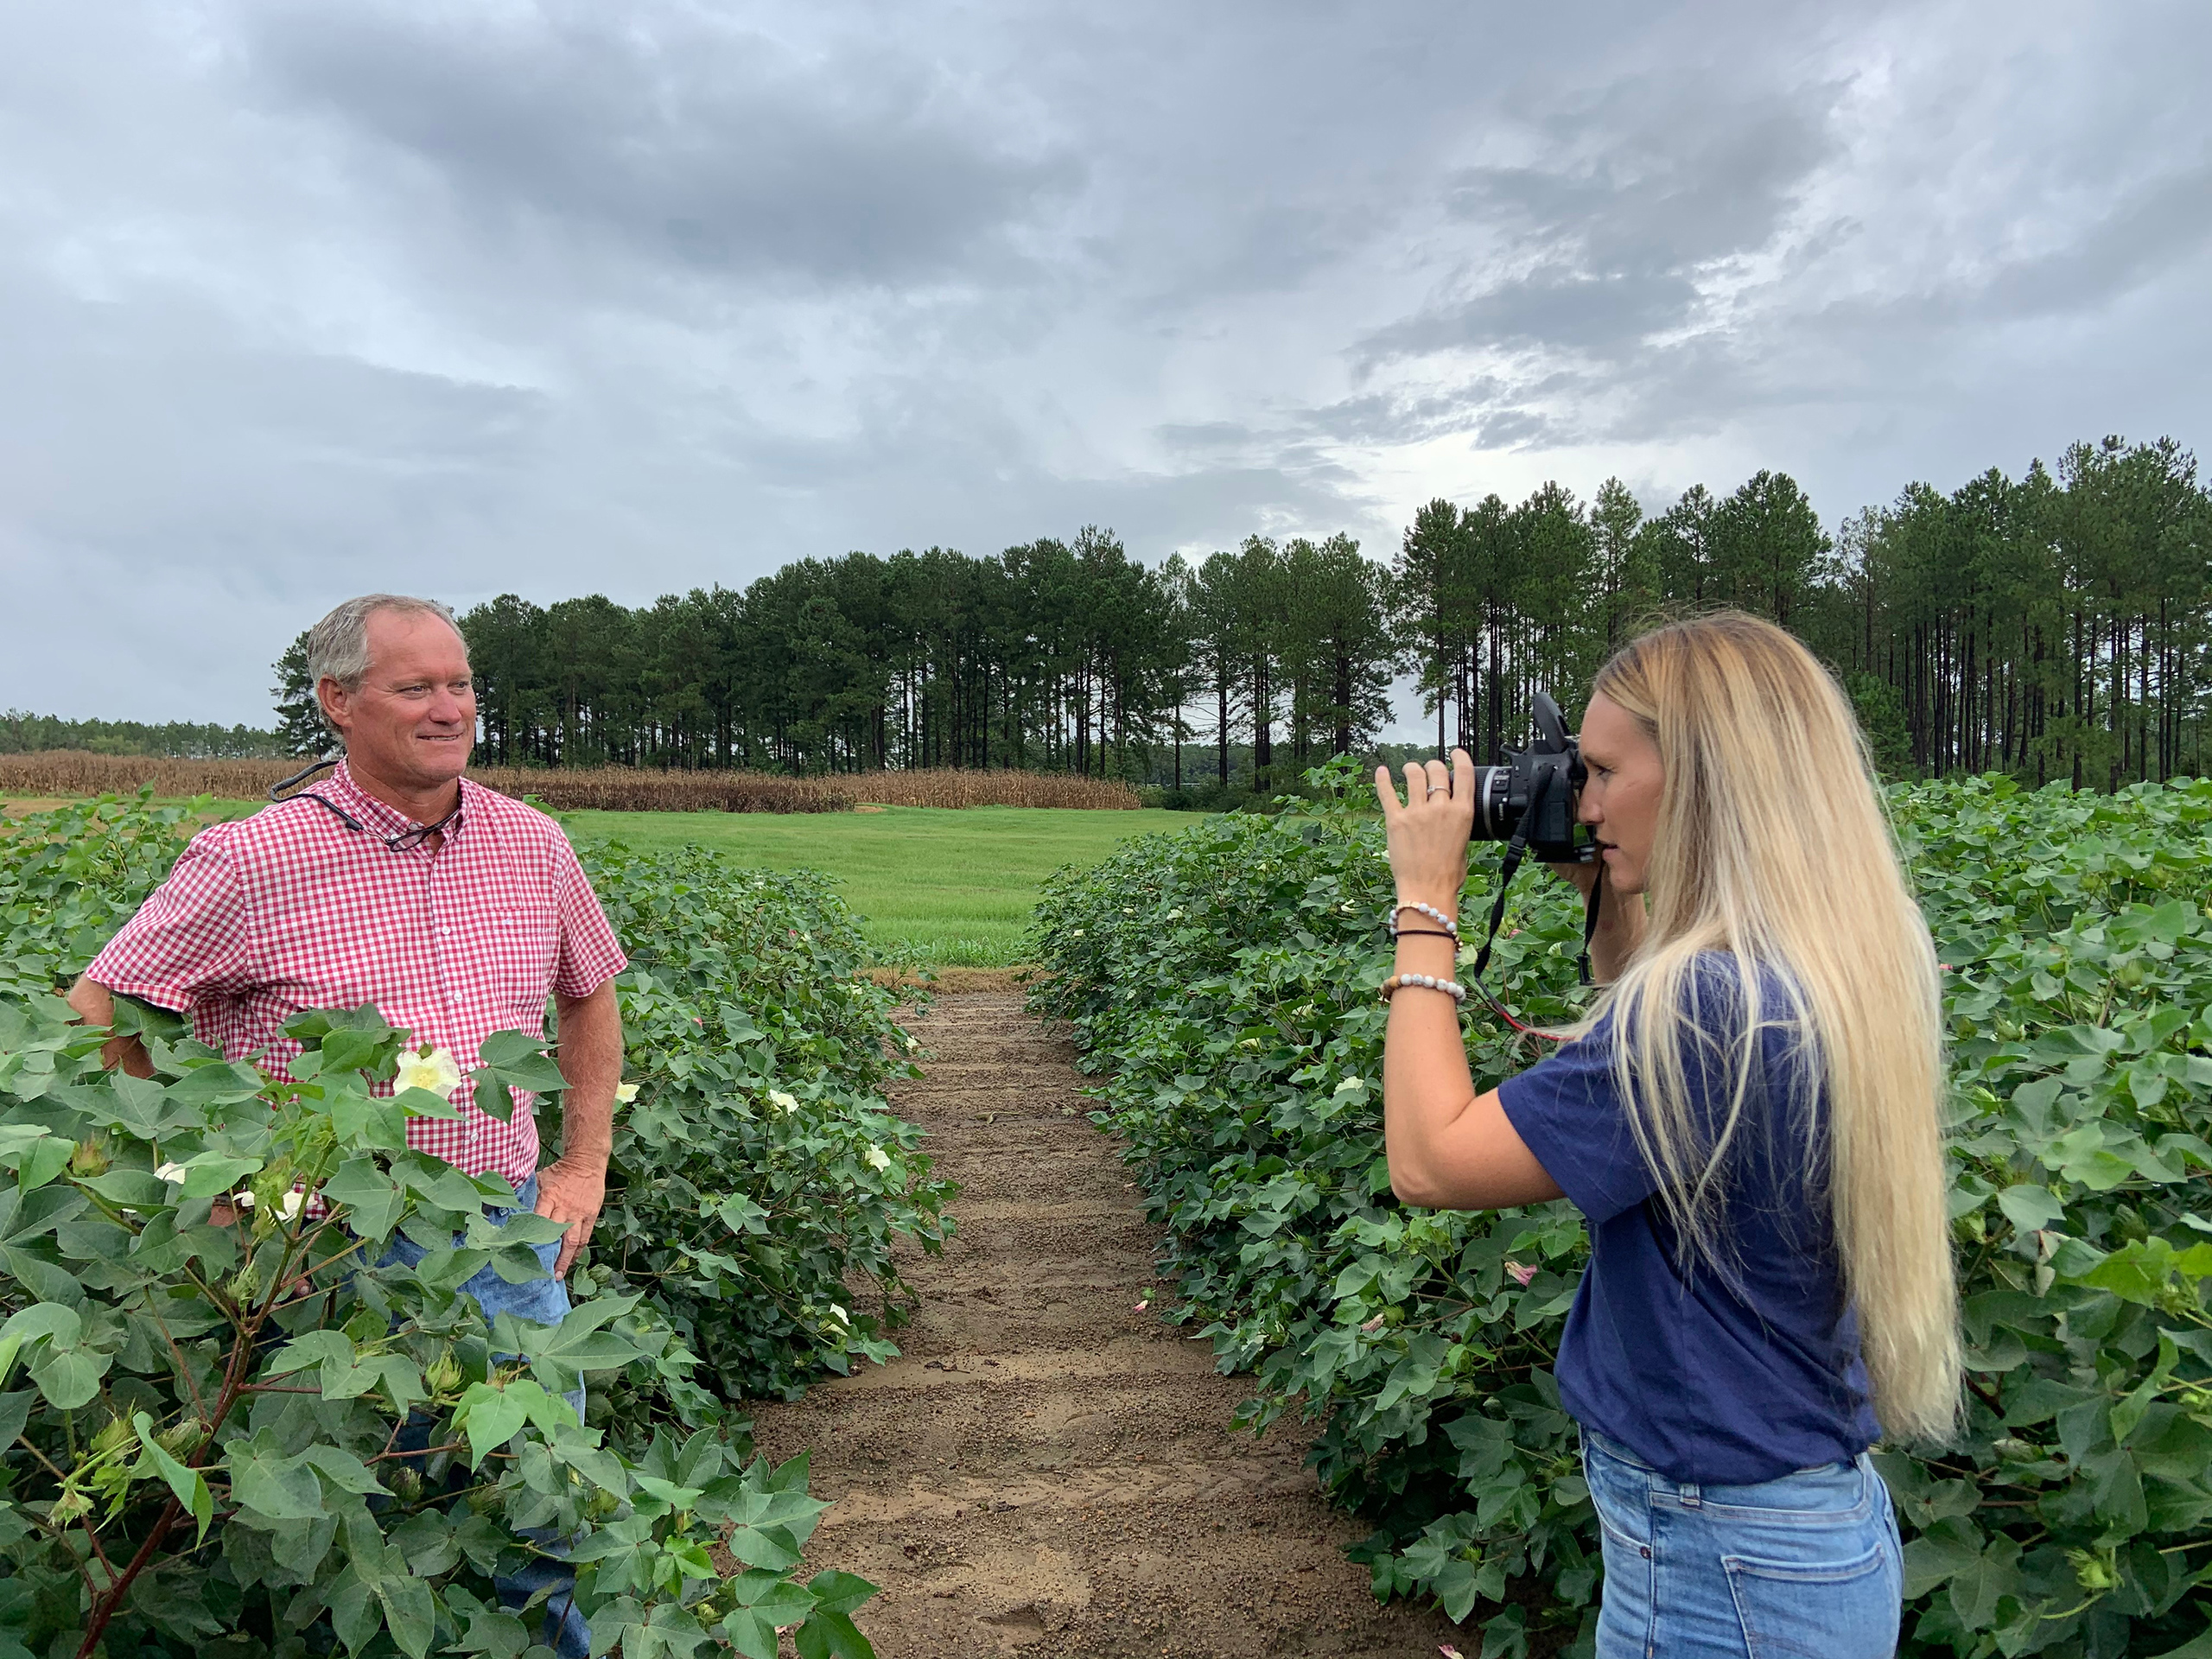 Caroline Snider takes a picture of Dr. Phillip Roberts, professor and extension entomologist for the University of Georgia in a cotton field.